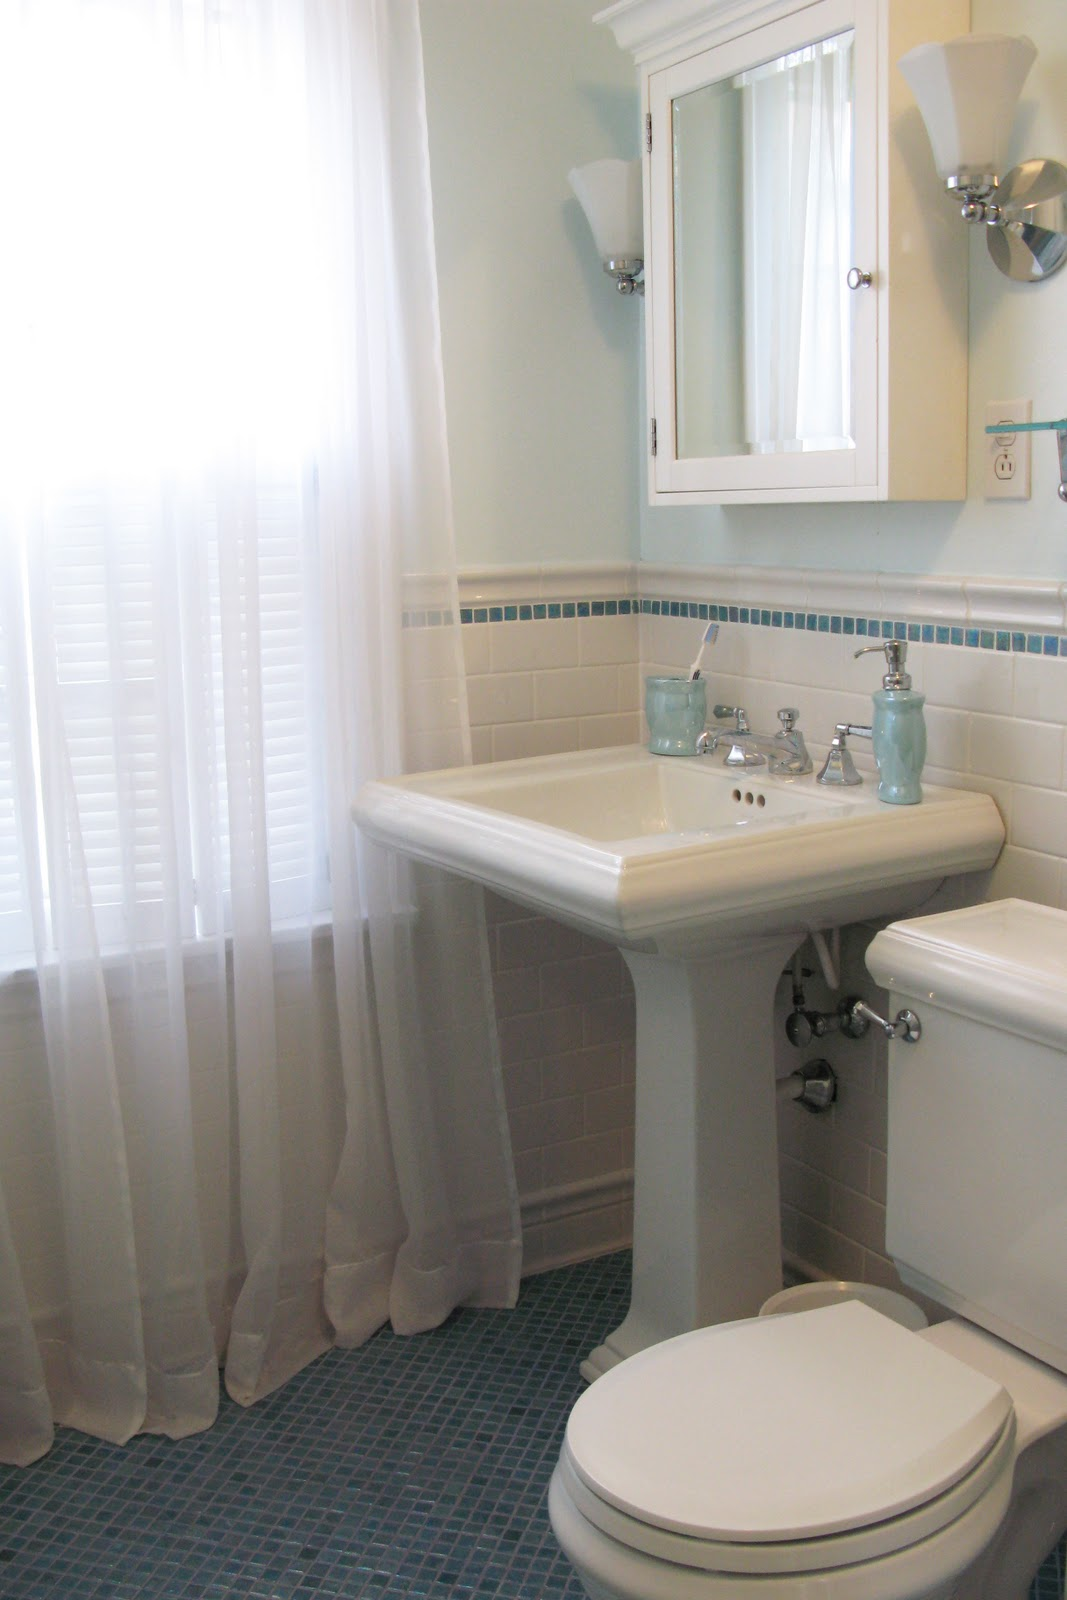 Astonishing bathroom with White kohler sinks with faucet plus mirror and white curtains ideas